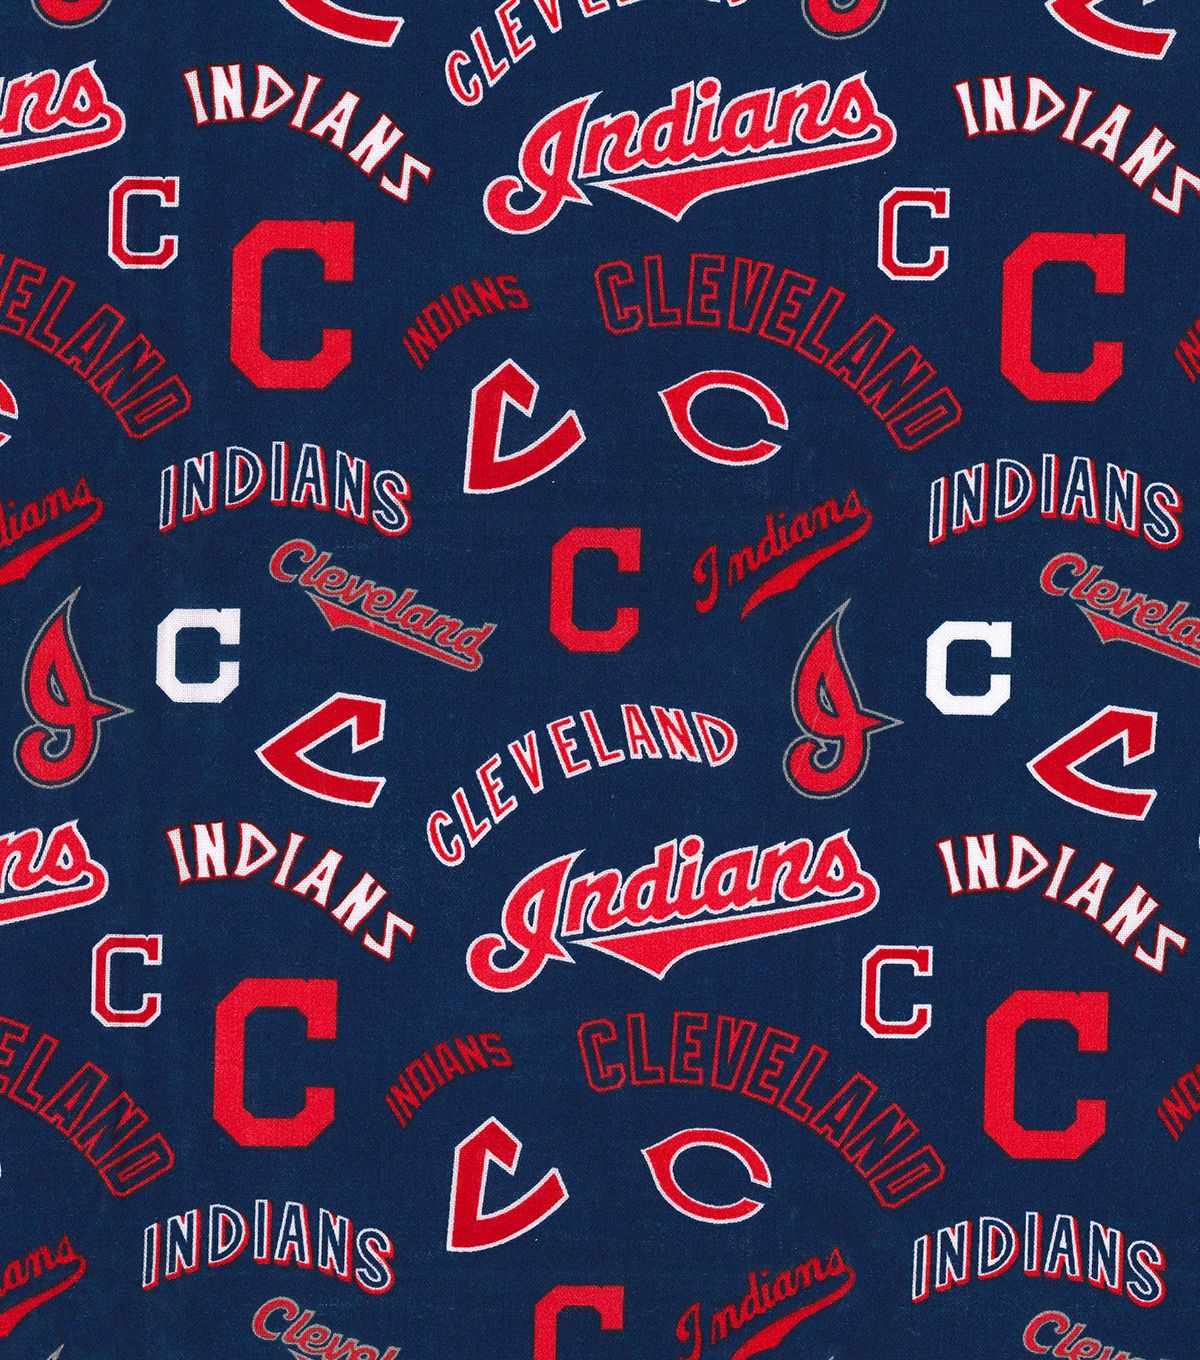 Cooperstown Cleveland Indians Cotton Fabric Joann Cleveland Indians Indians Cleveland